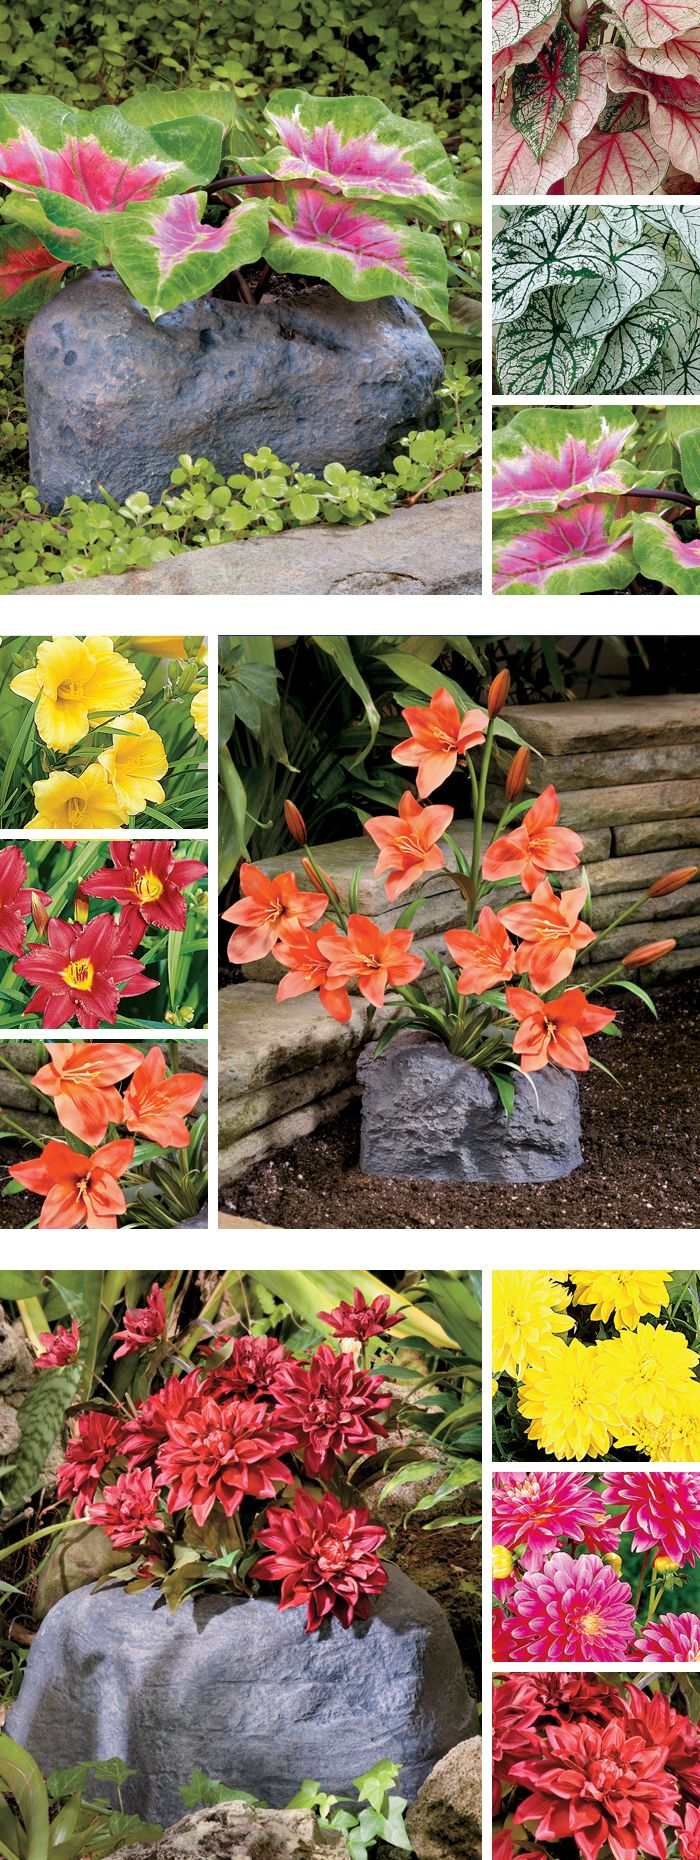 Flowerocks - Decorative rock planters pre-planted with perennial bulbs. Just pull back the seal, place in a sunny spot, and water! Now that's easy gardening!